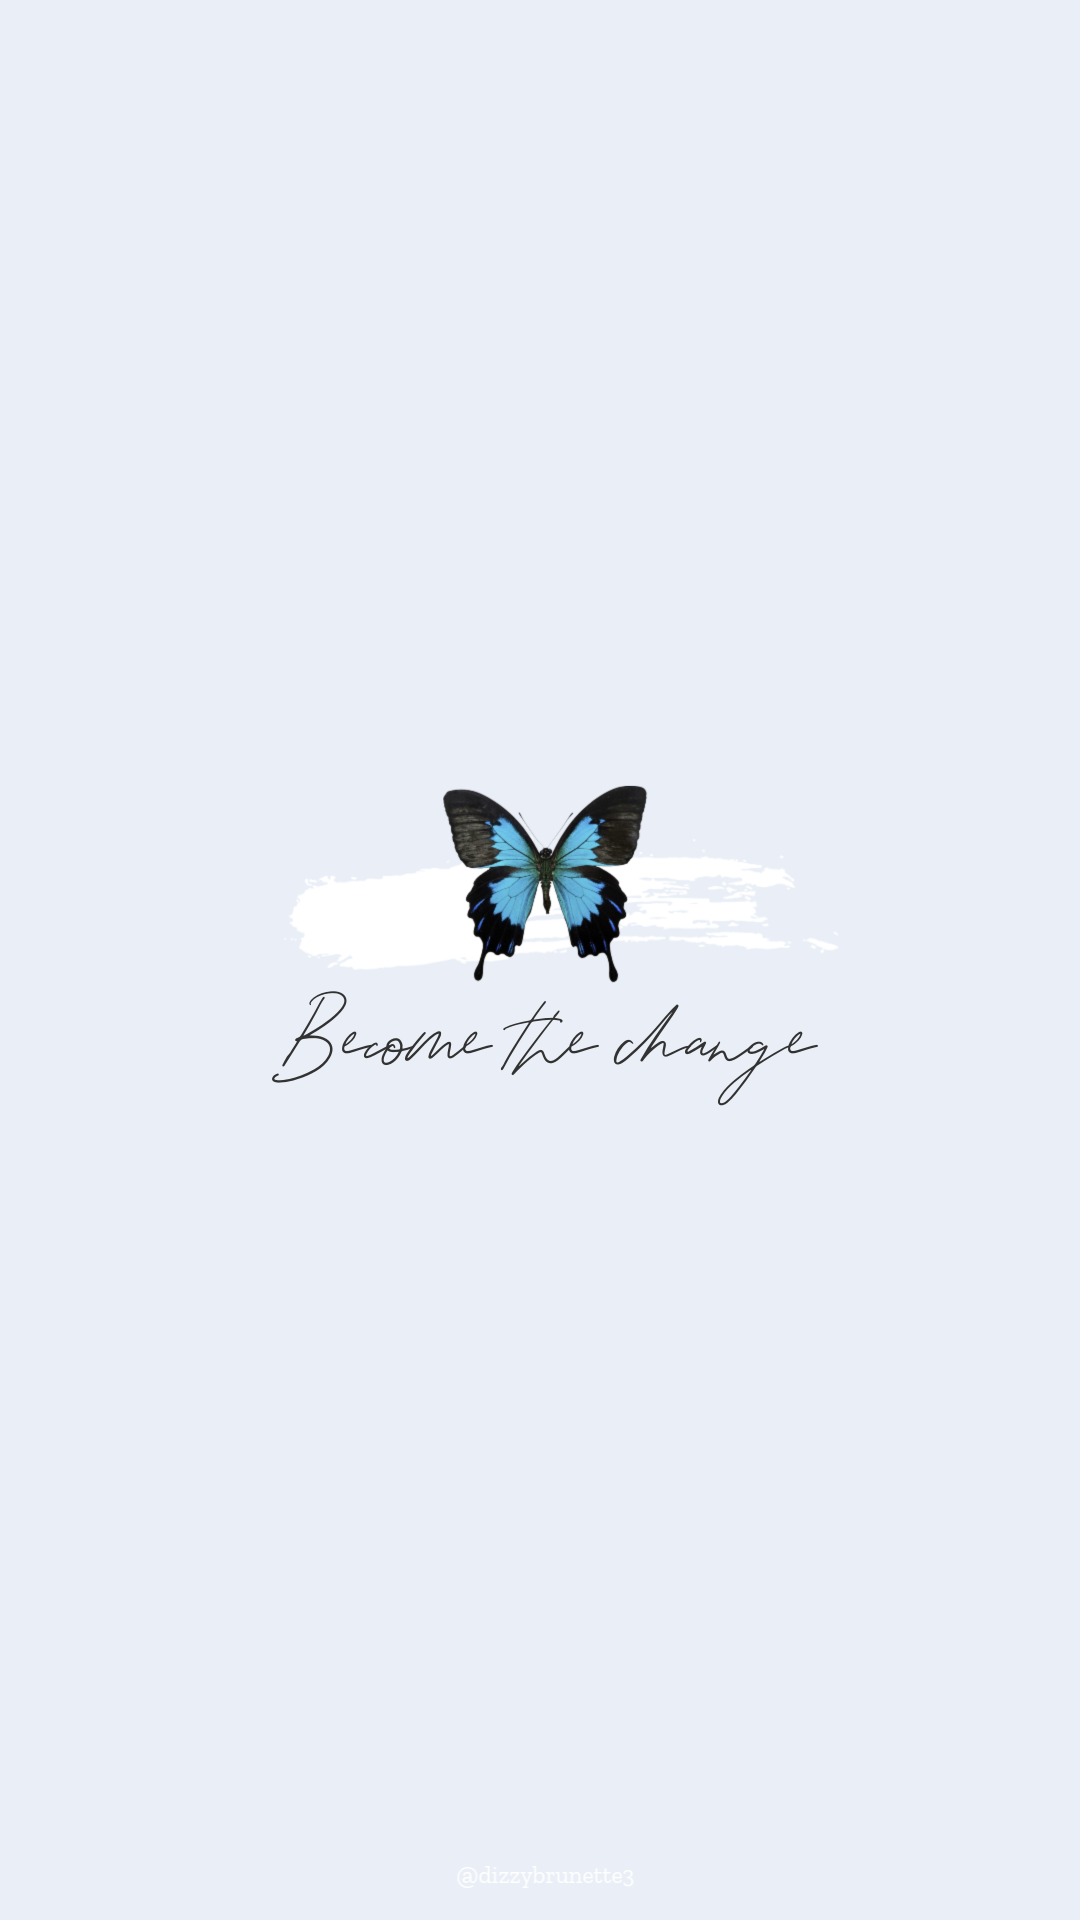 Free Phone Wallpapers April Butterfly Wallpaper Iphone Aesthetic Iphone Wallpaper Iphone Background Wallpaper